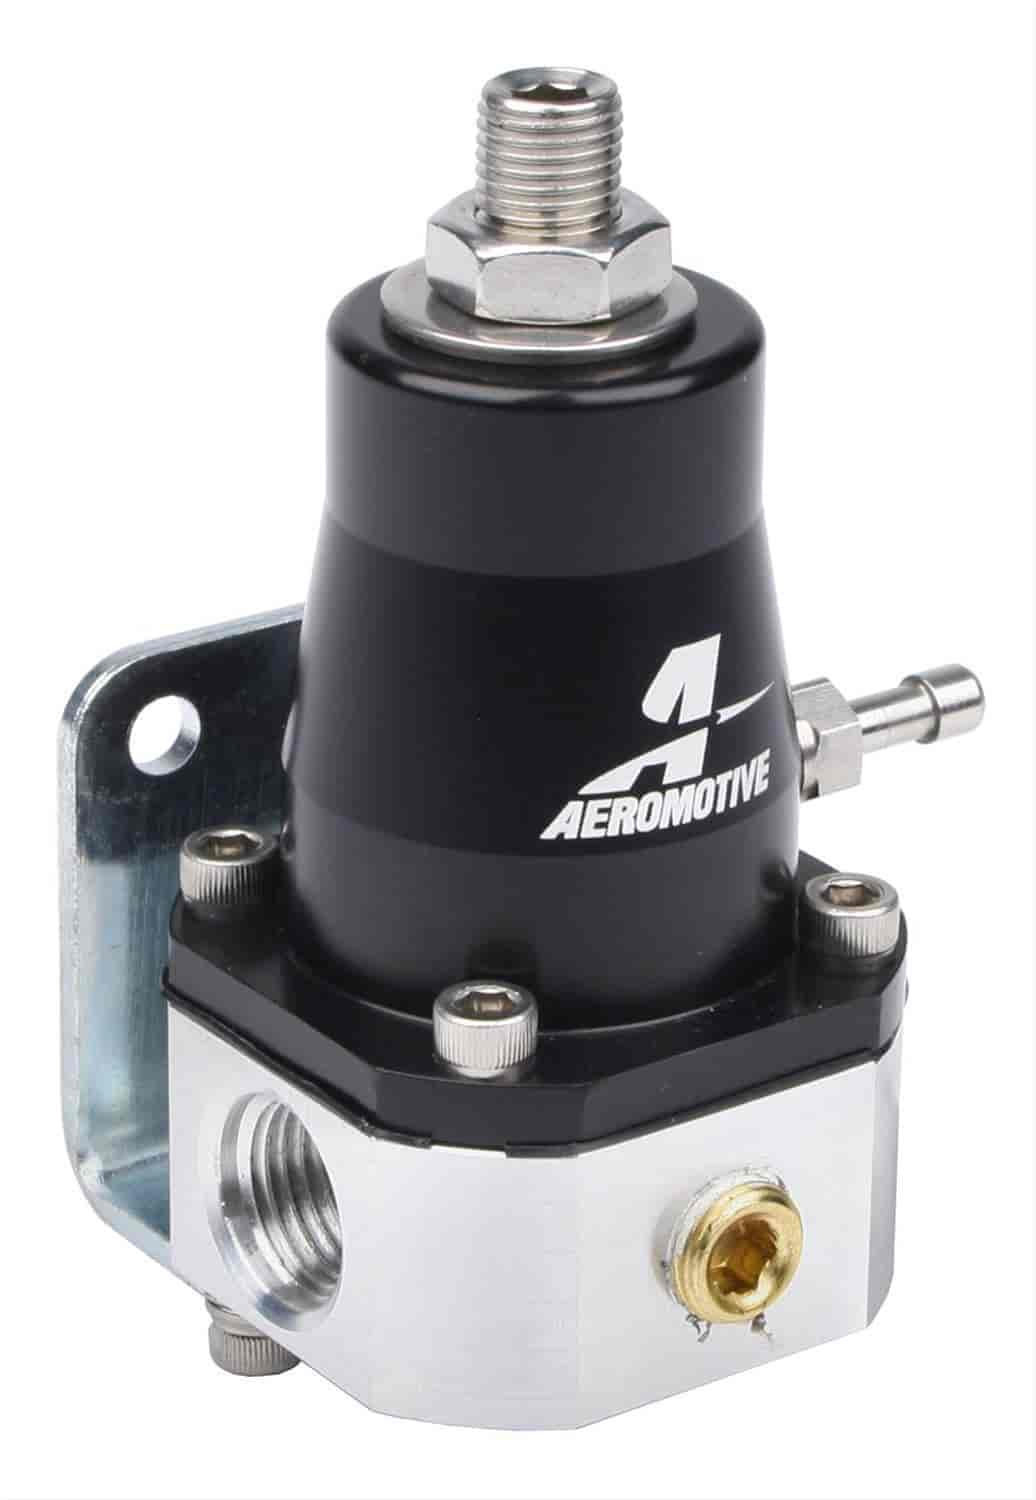 Aeromotive 13129 - Aeromotive Compact EFI Fuel Pressure Regulator